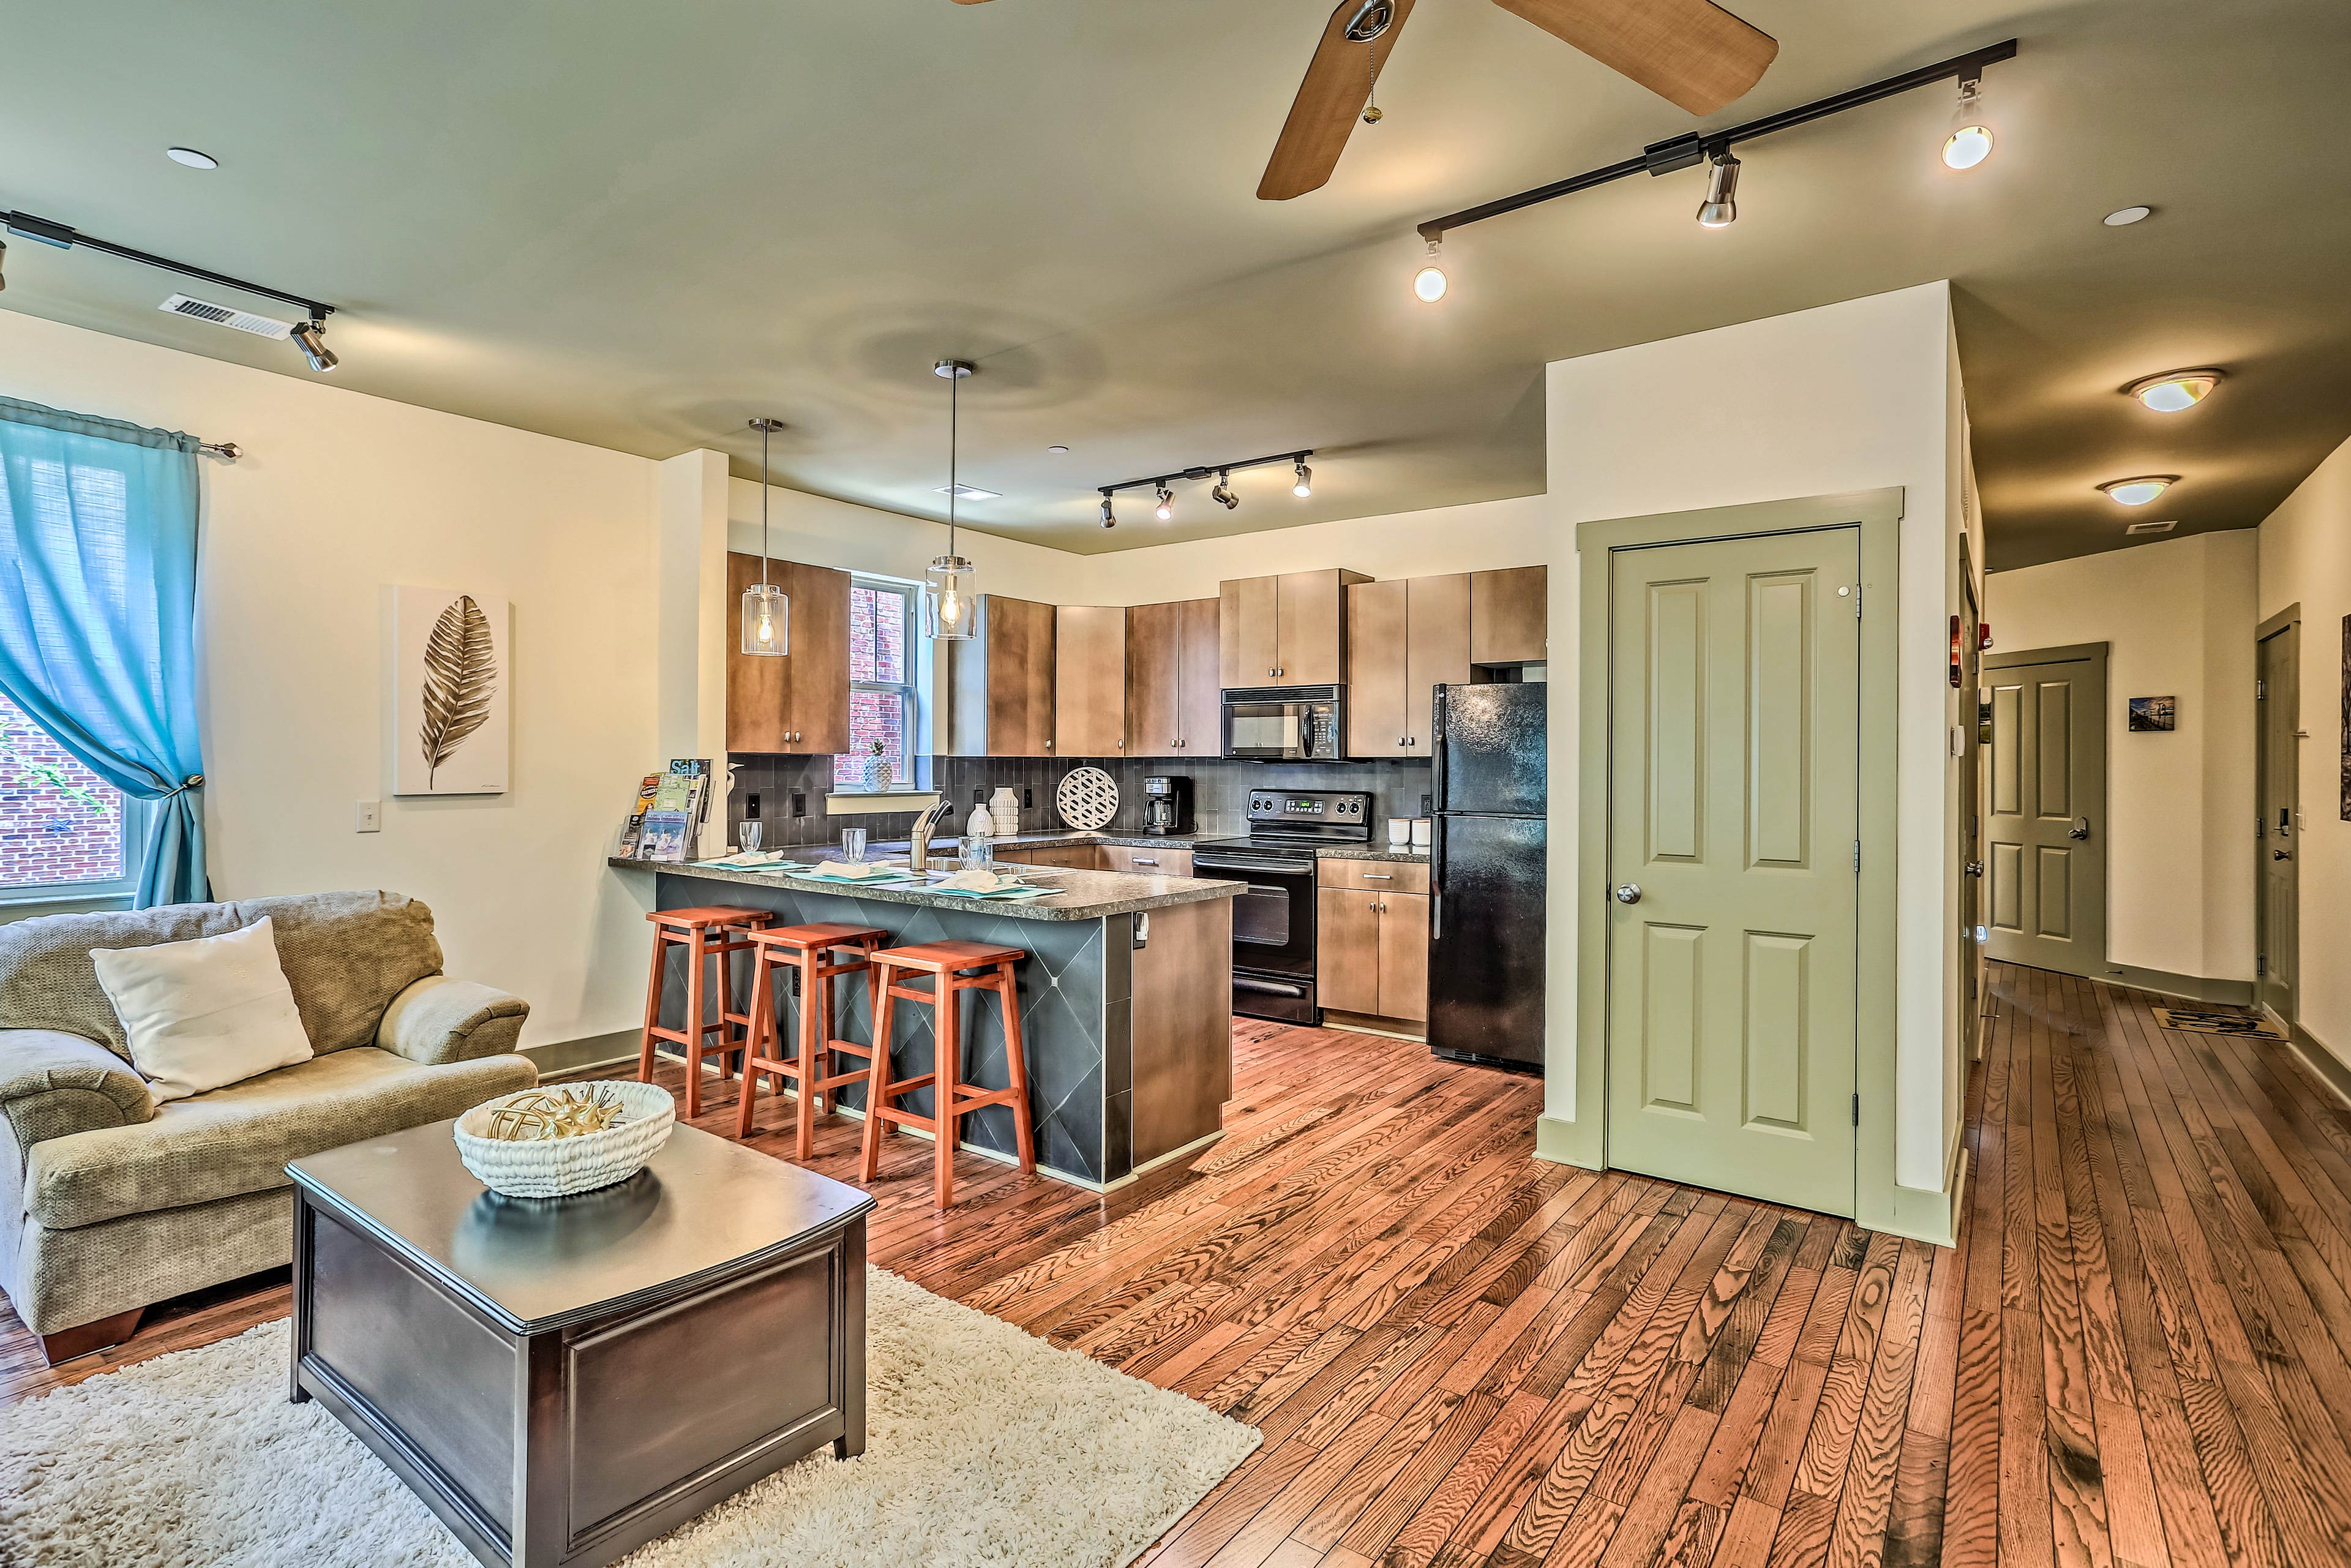 Hardwood floors lead throughout the cozy 1,000-square-foot unit.